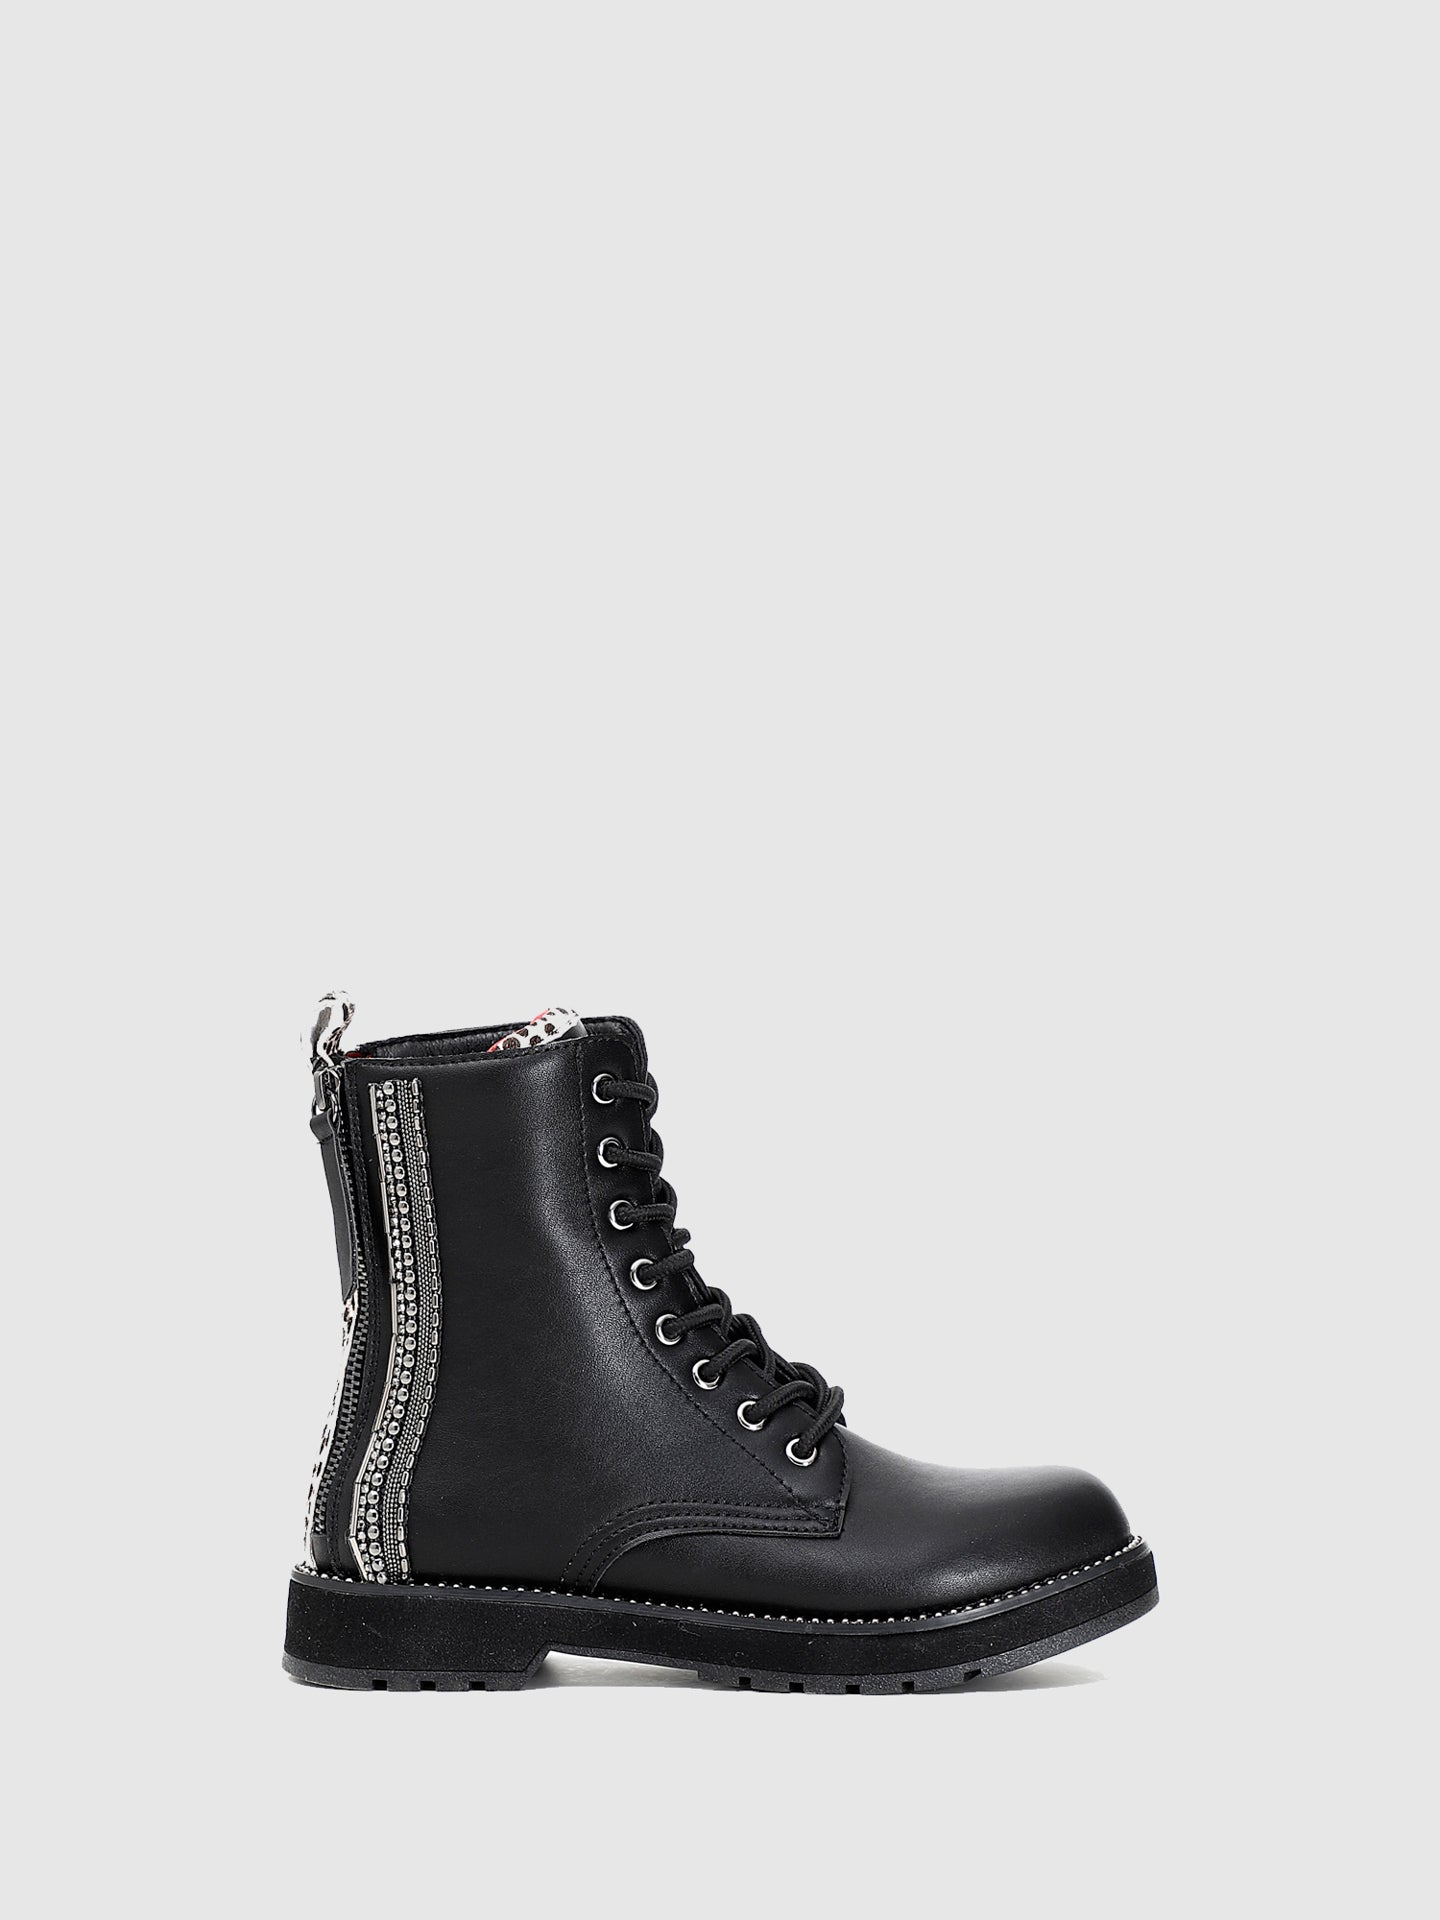 Cafè Noir Black Zip Up Boots